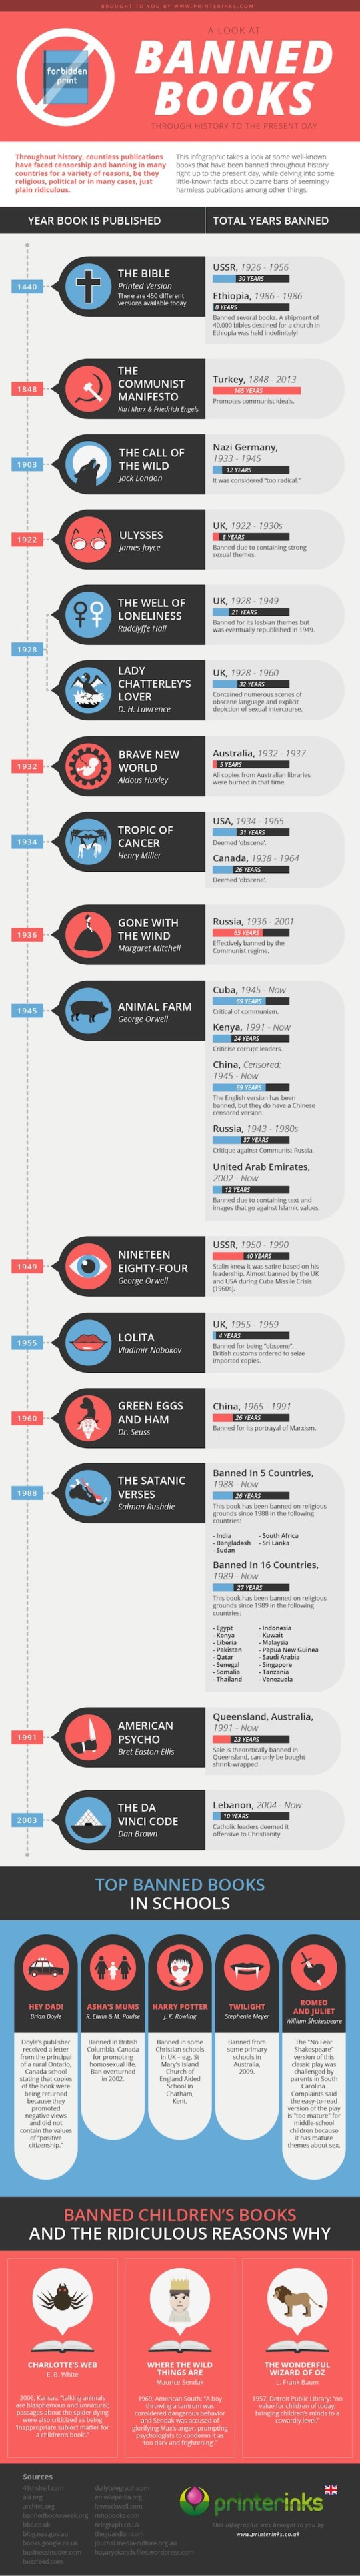 Top banned books throughout history #infographic